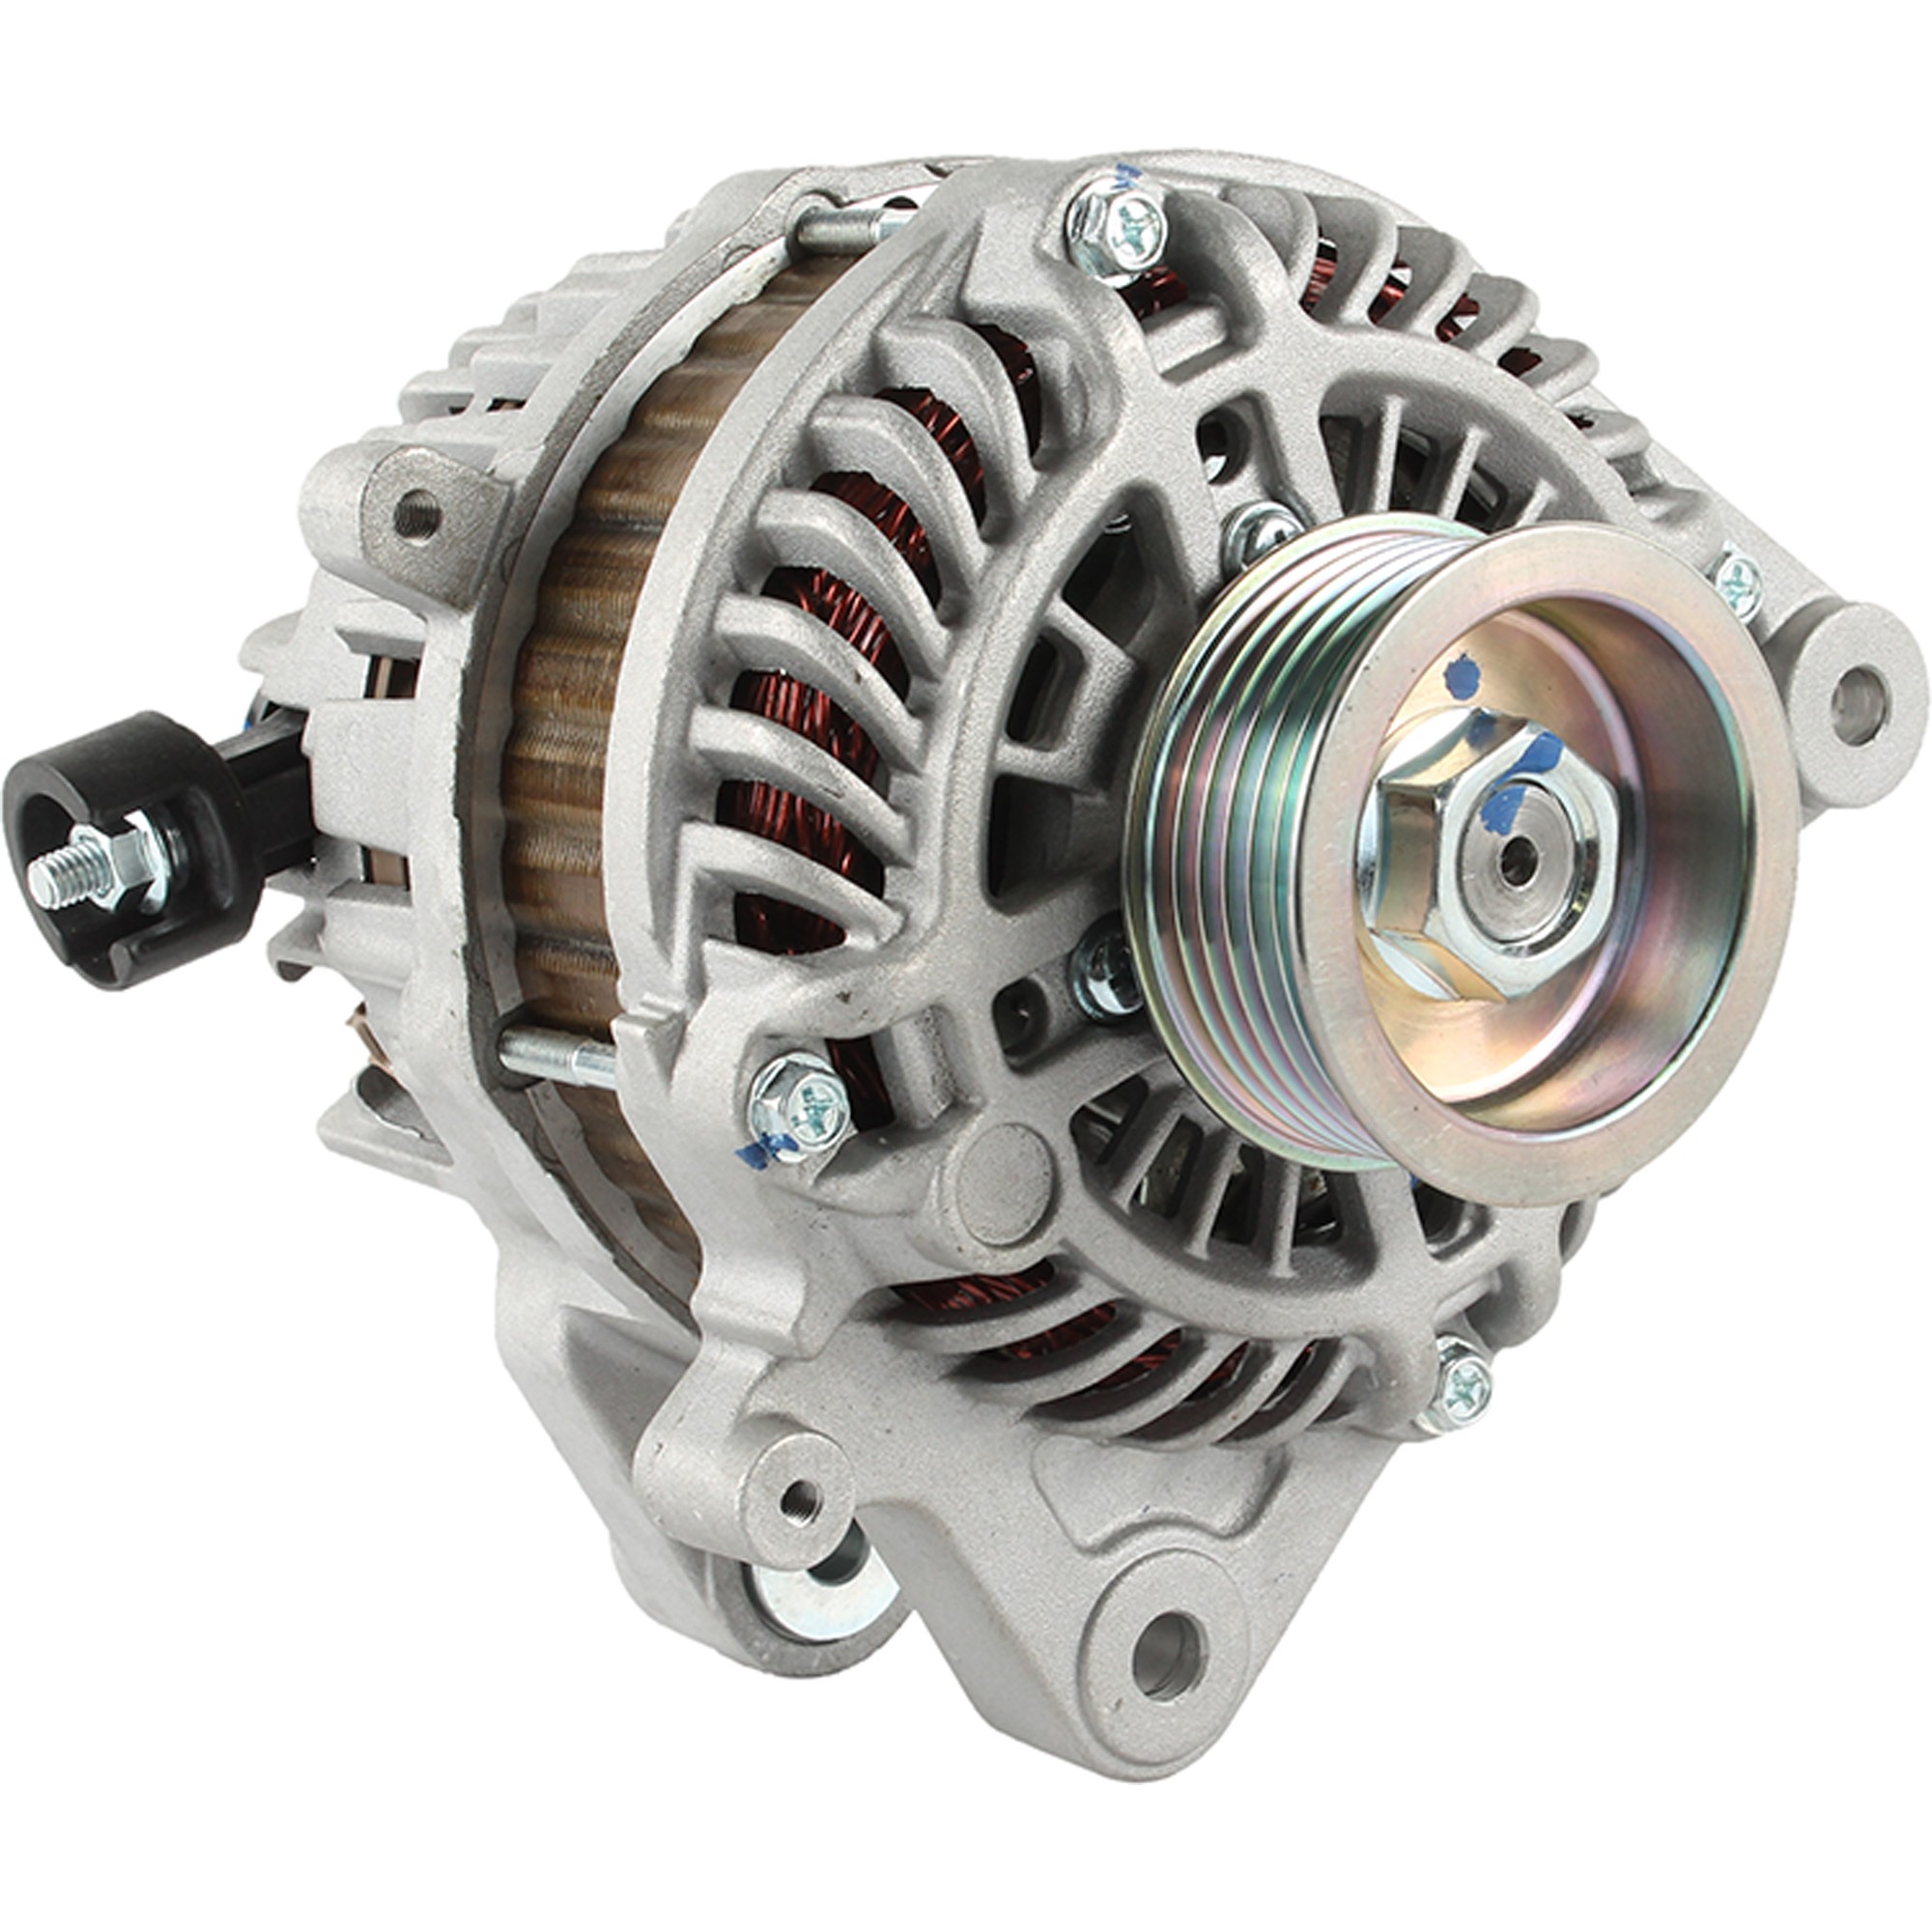 New Alternator For Acura ILX 2.0L 2.0 13 14 15 2013 2014